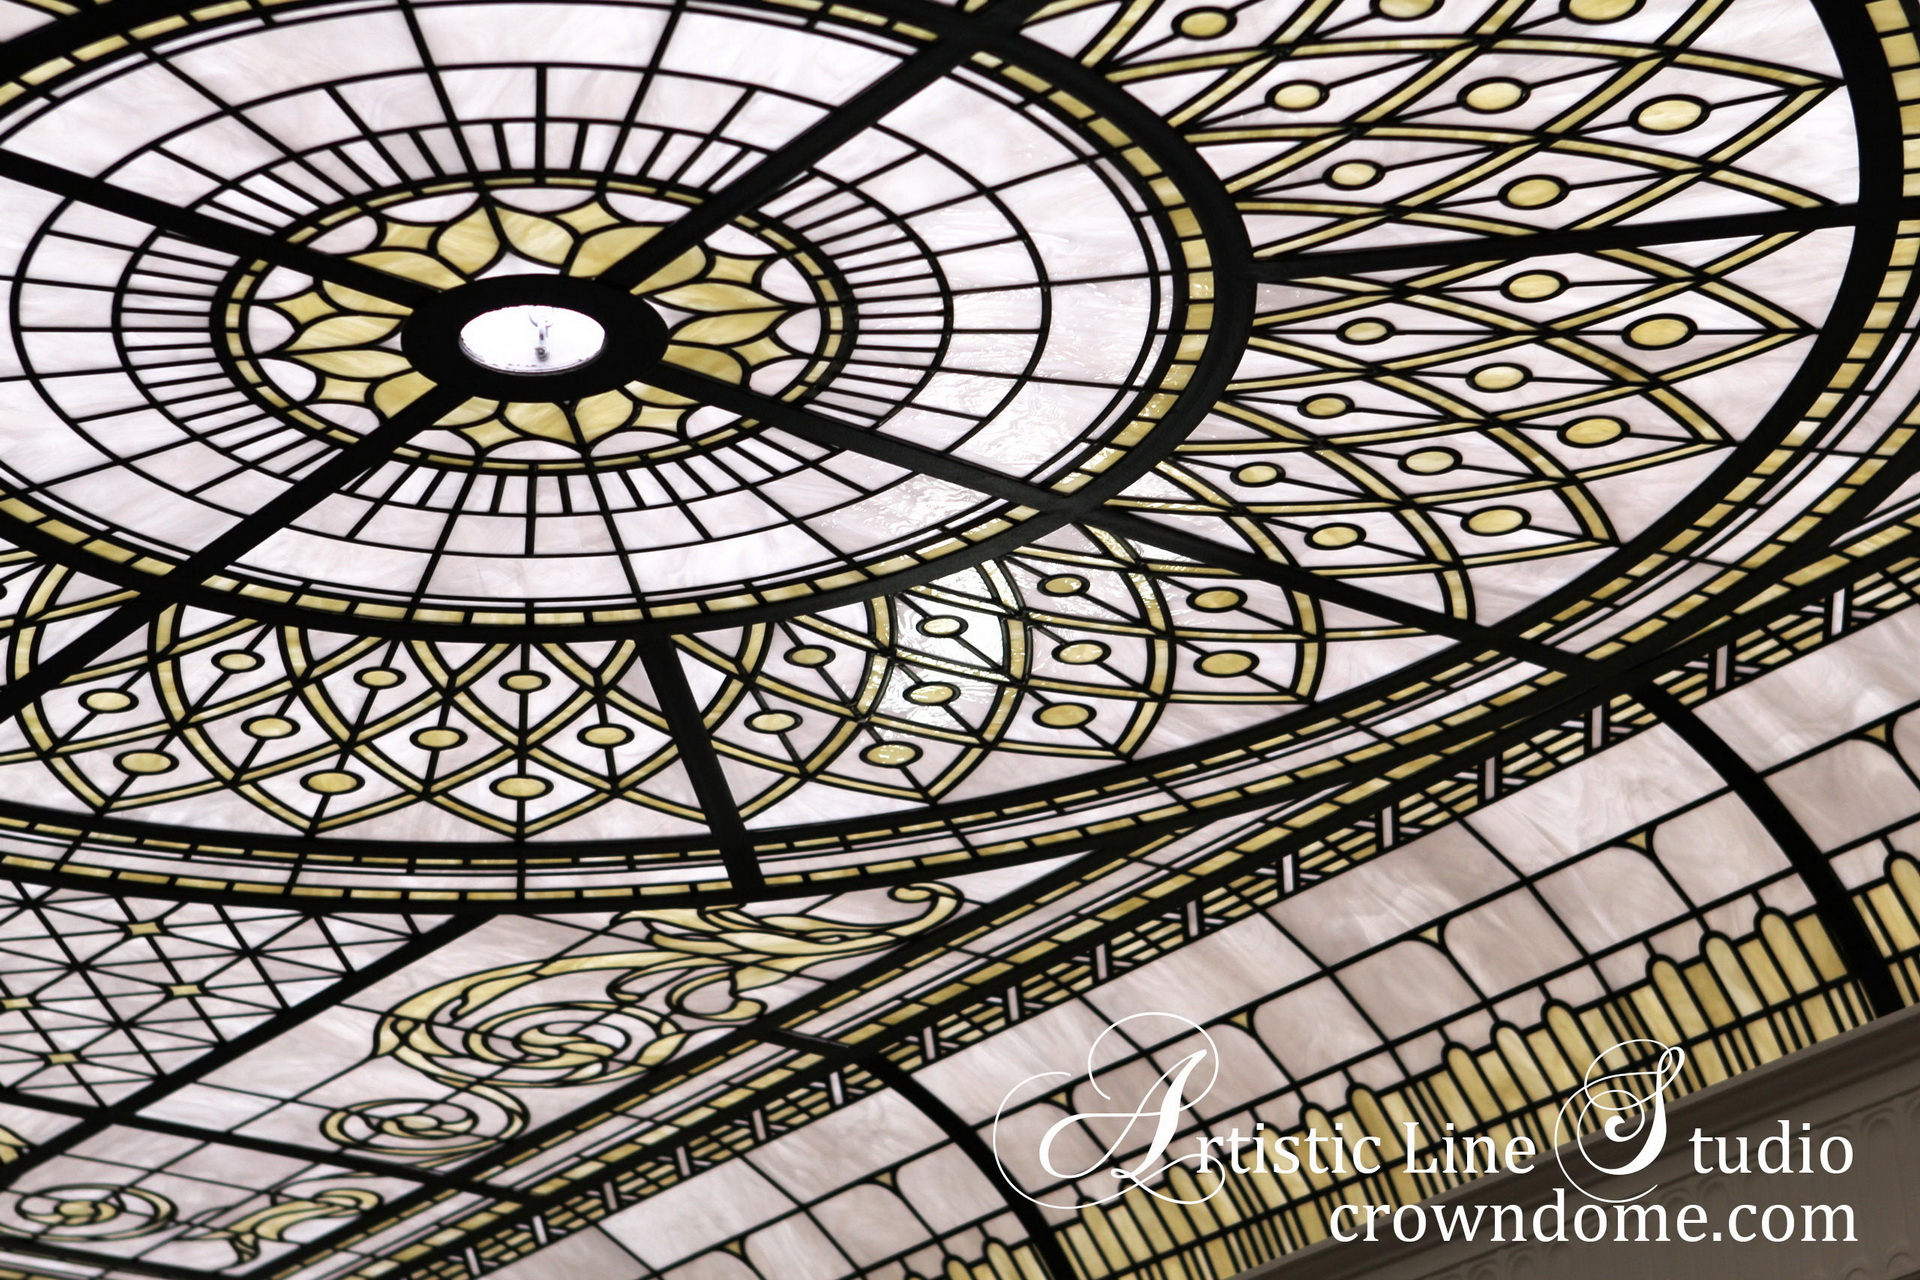 Stained leaded glass skylight decorative glass ceiling for a foyer of a luxury estate by Granoff Architects. Stained leaded glass decorative ceiling design by glass artist Victoria Balva in pale ivory and white opal glasses